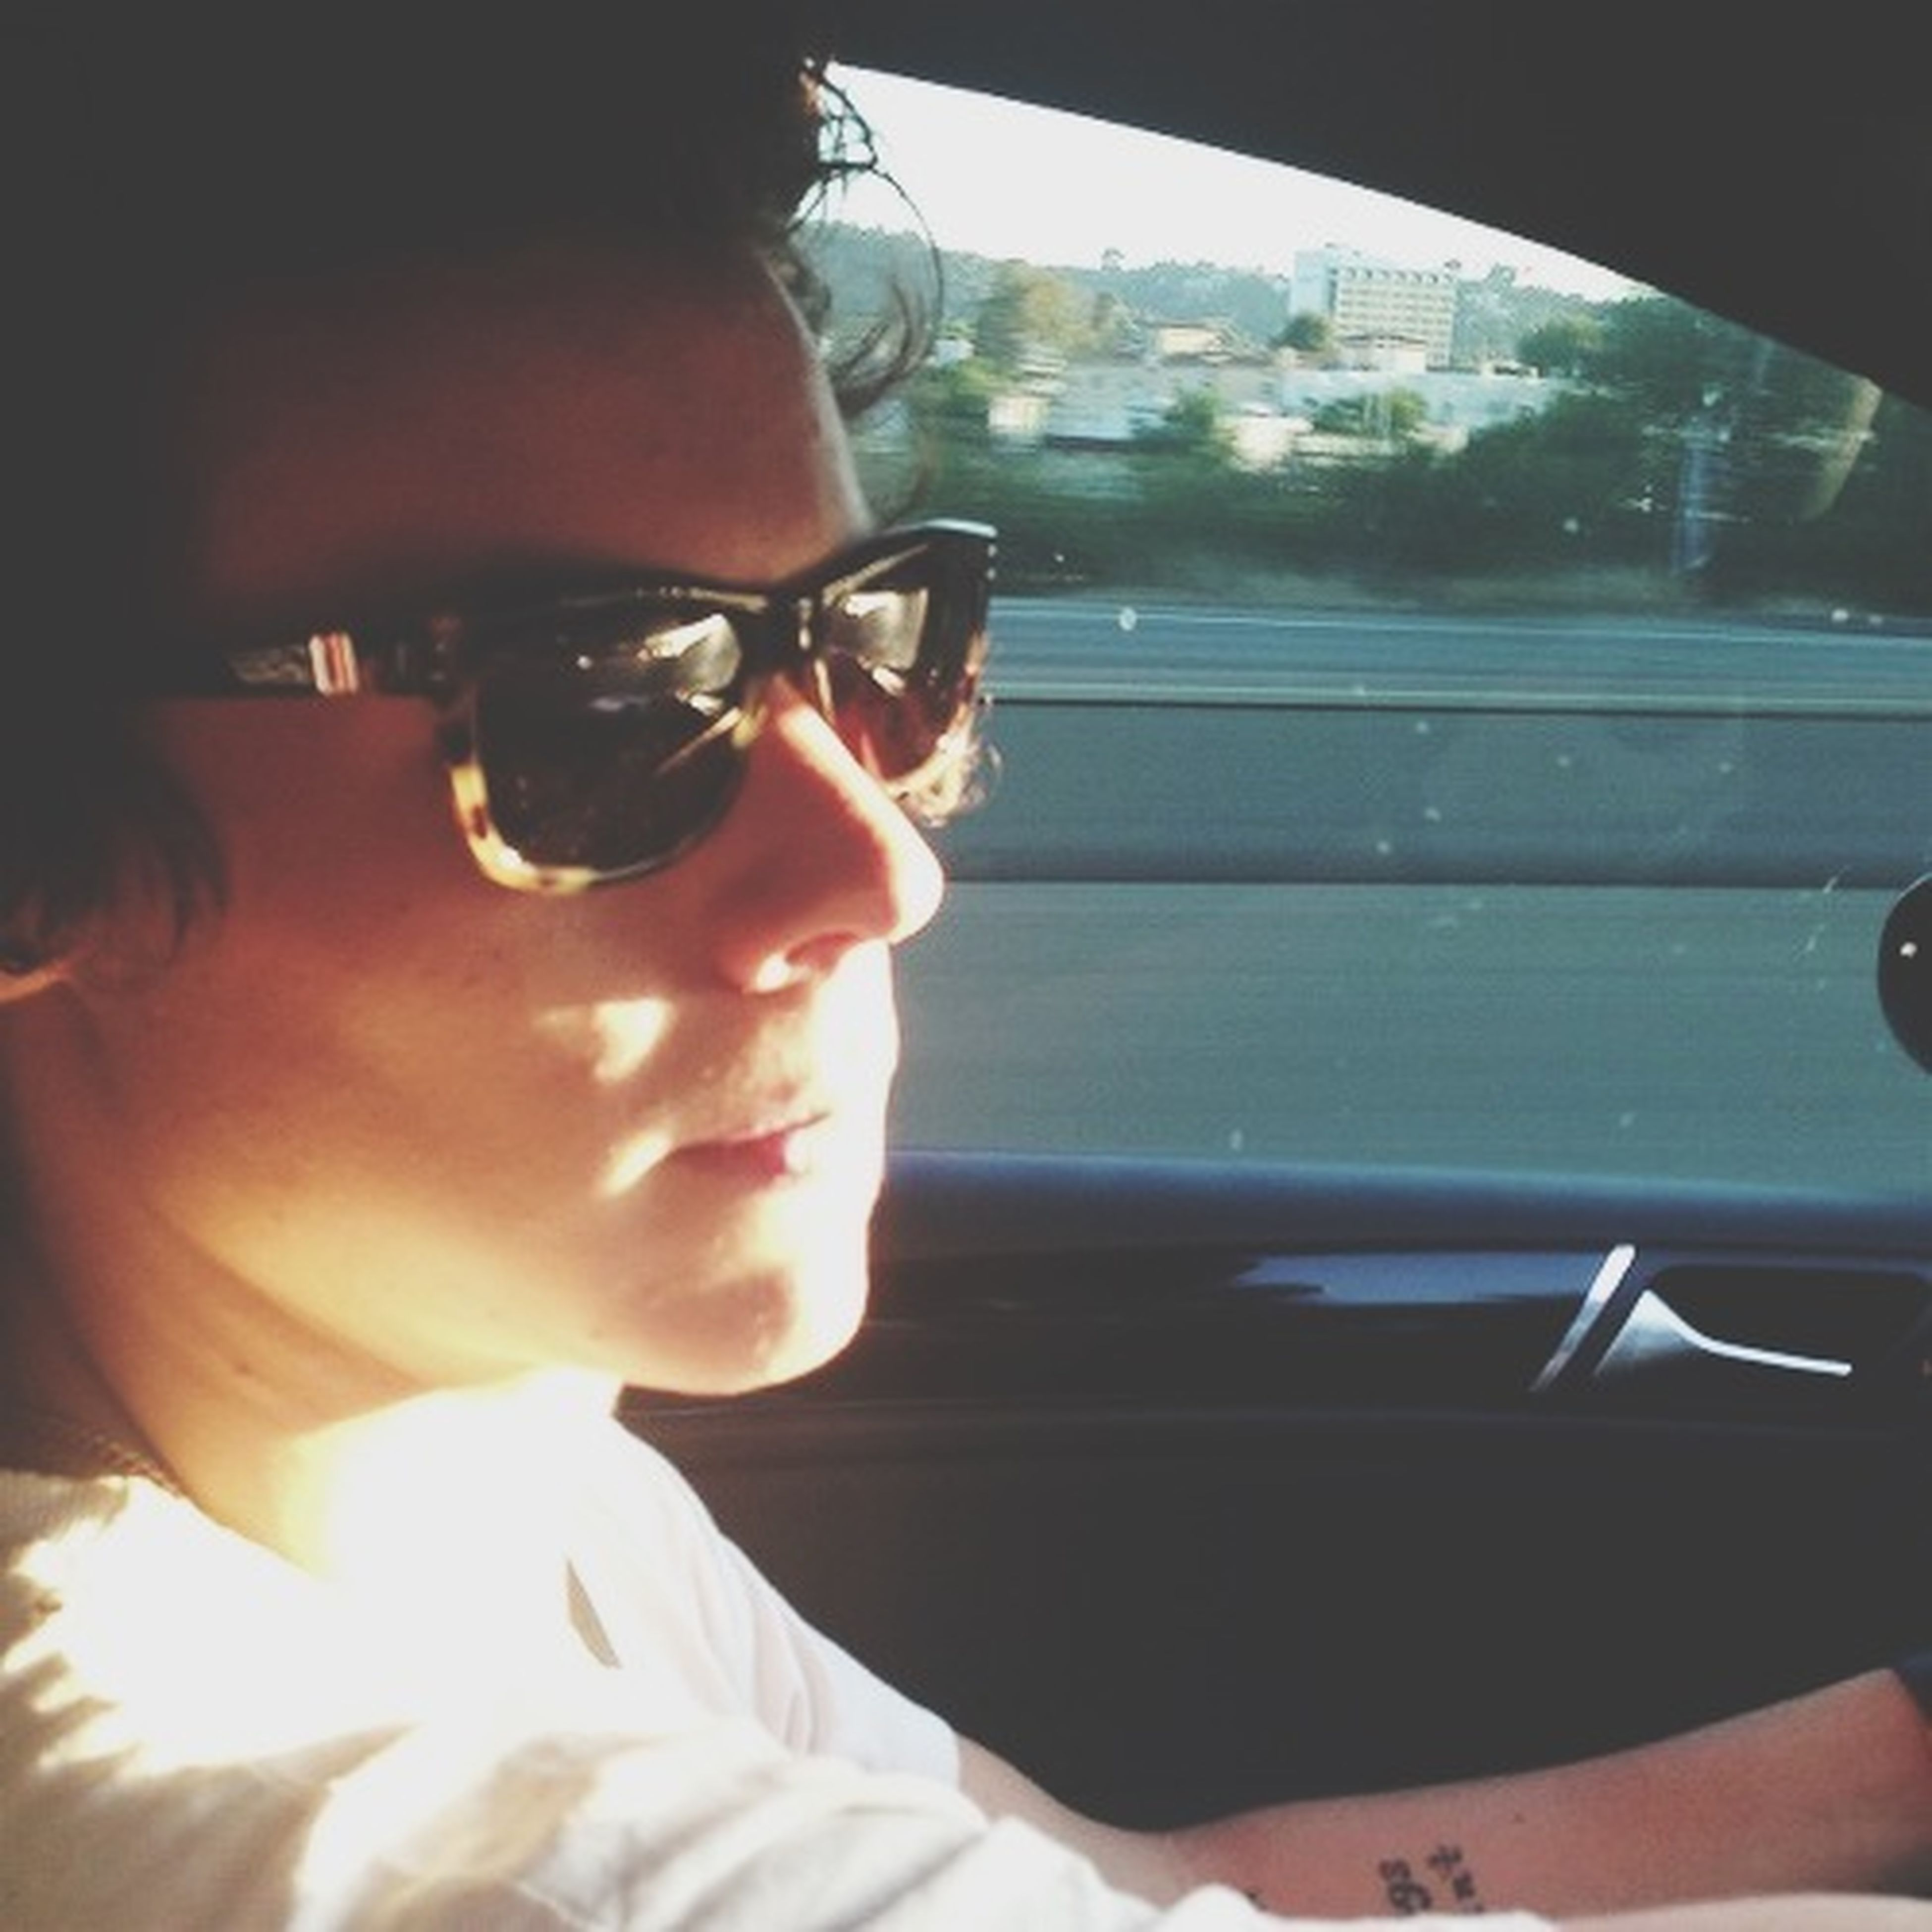 lifestyles, young adult, person, leisure activity, headshot, transportation, mode of transport, indoors, sunglasses, young men, vehicle interior, casual clothing, portrait, looking at camera, window, car, head and shoulders